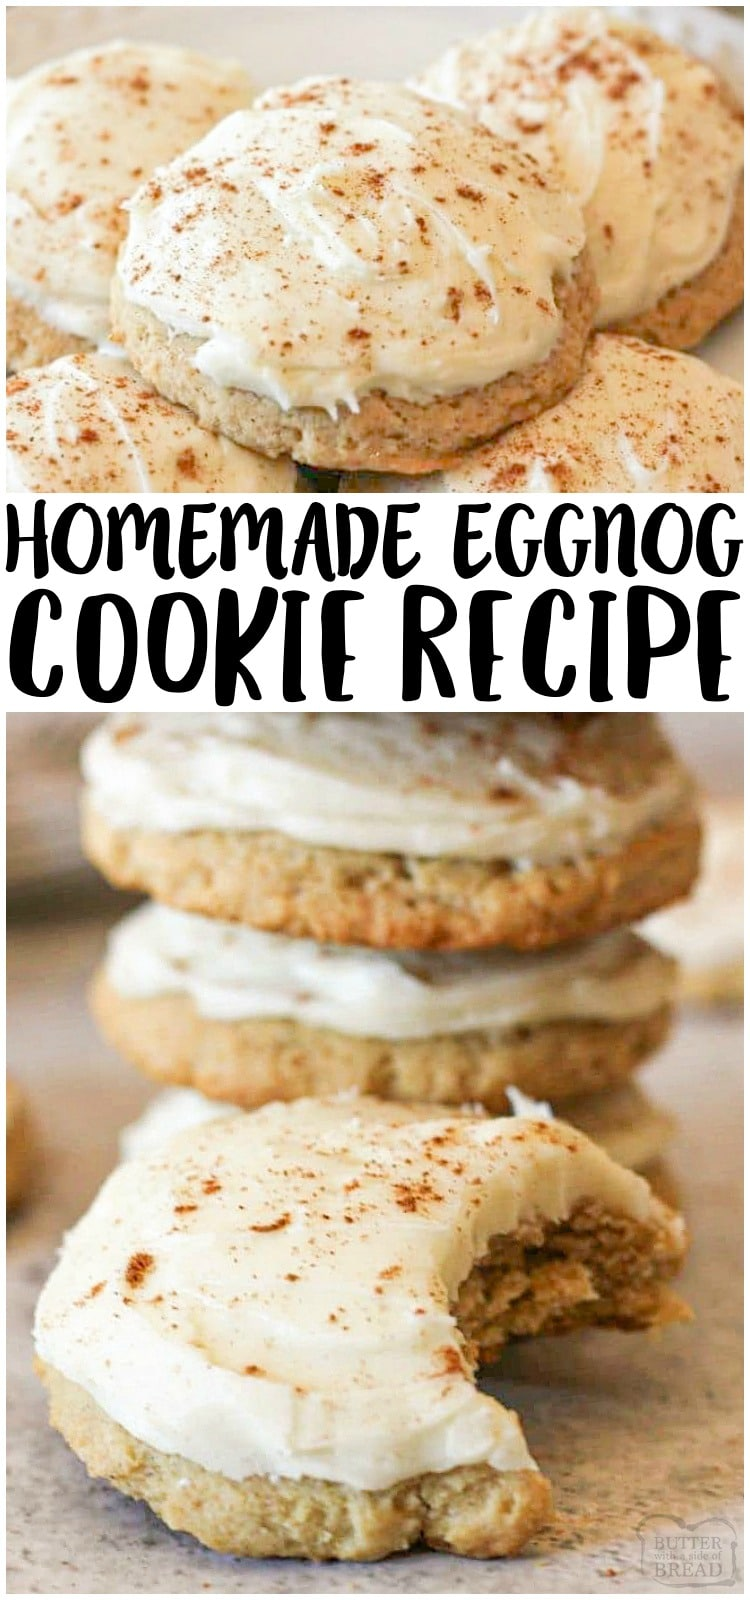 Eggnog Cookies perfect for Santa! Soft & chewy sugar cookies topped with a creamy frosting all with the delicious flavor of eggnog! Lovely cookie recipe for Eggnog lovers.